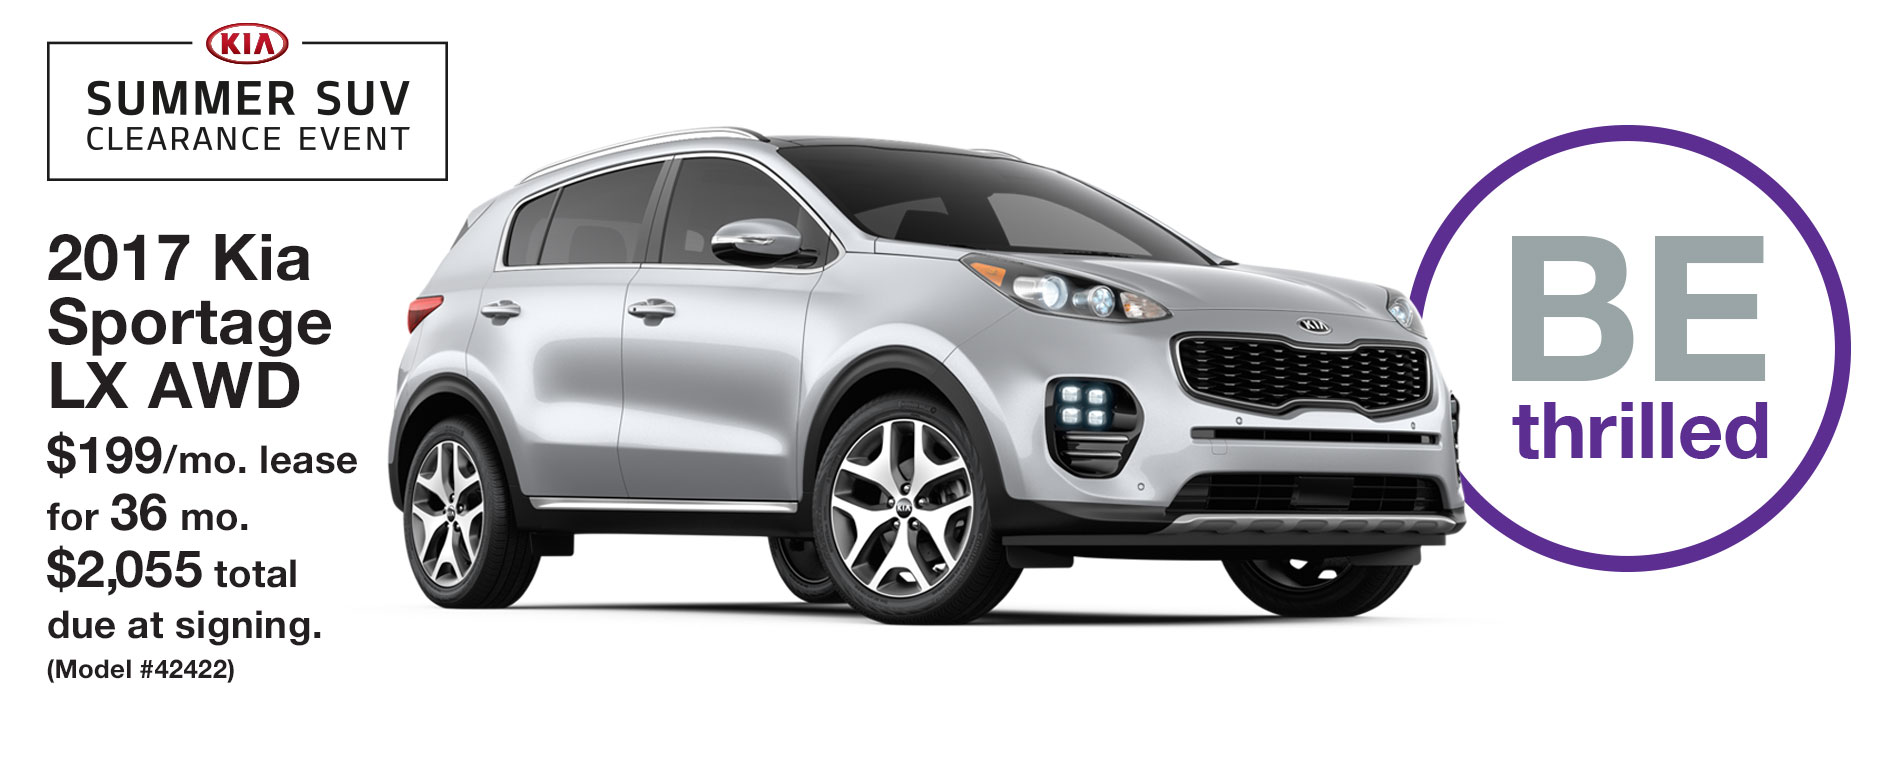 2017 Kia Sportage LX AWD Lease $199 per month for 36 months with $2,055 due at signing